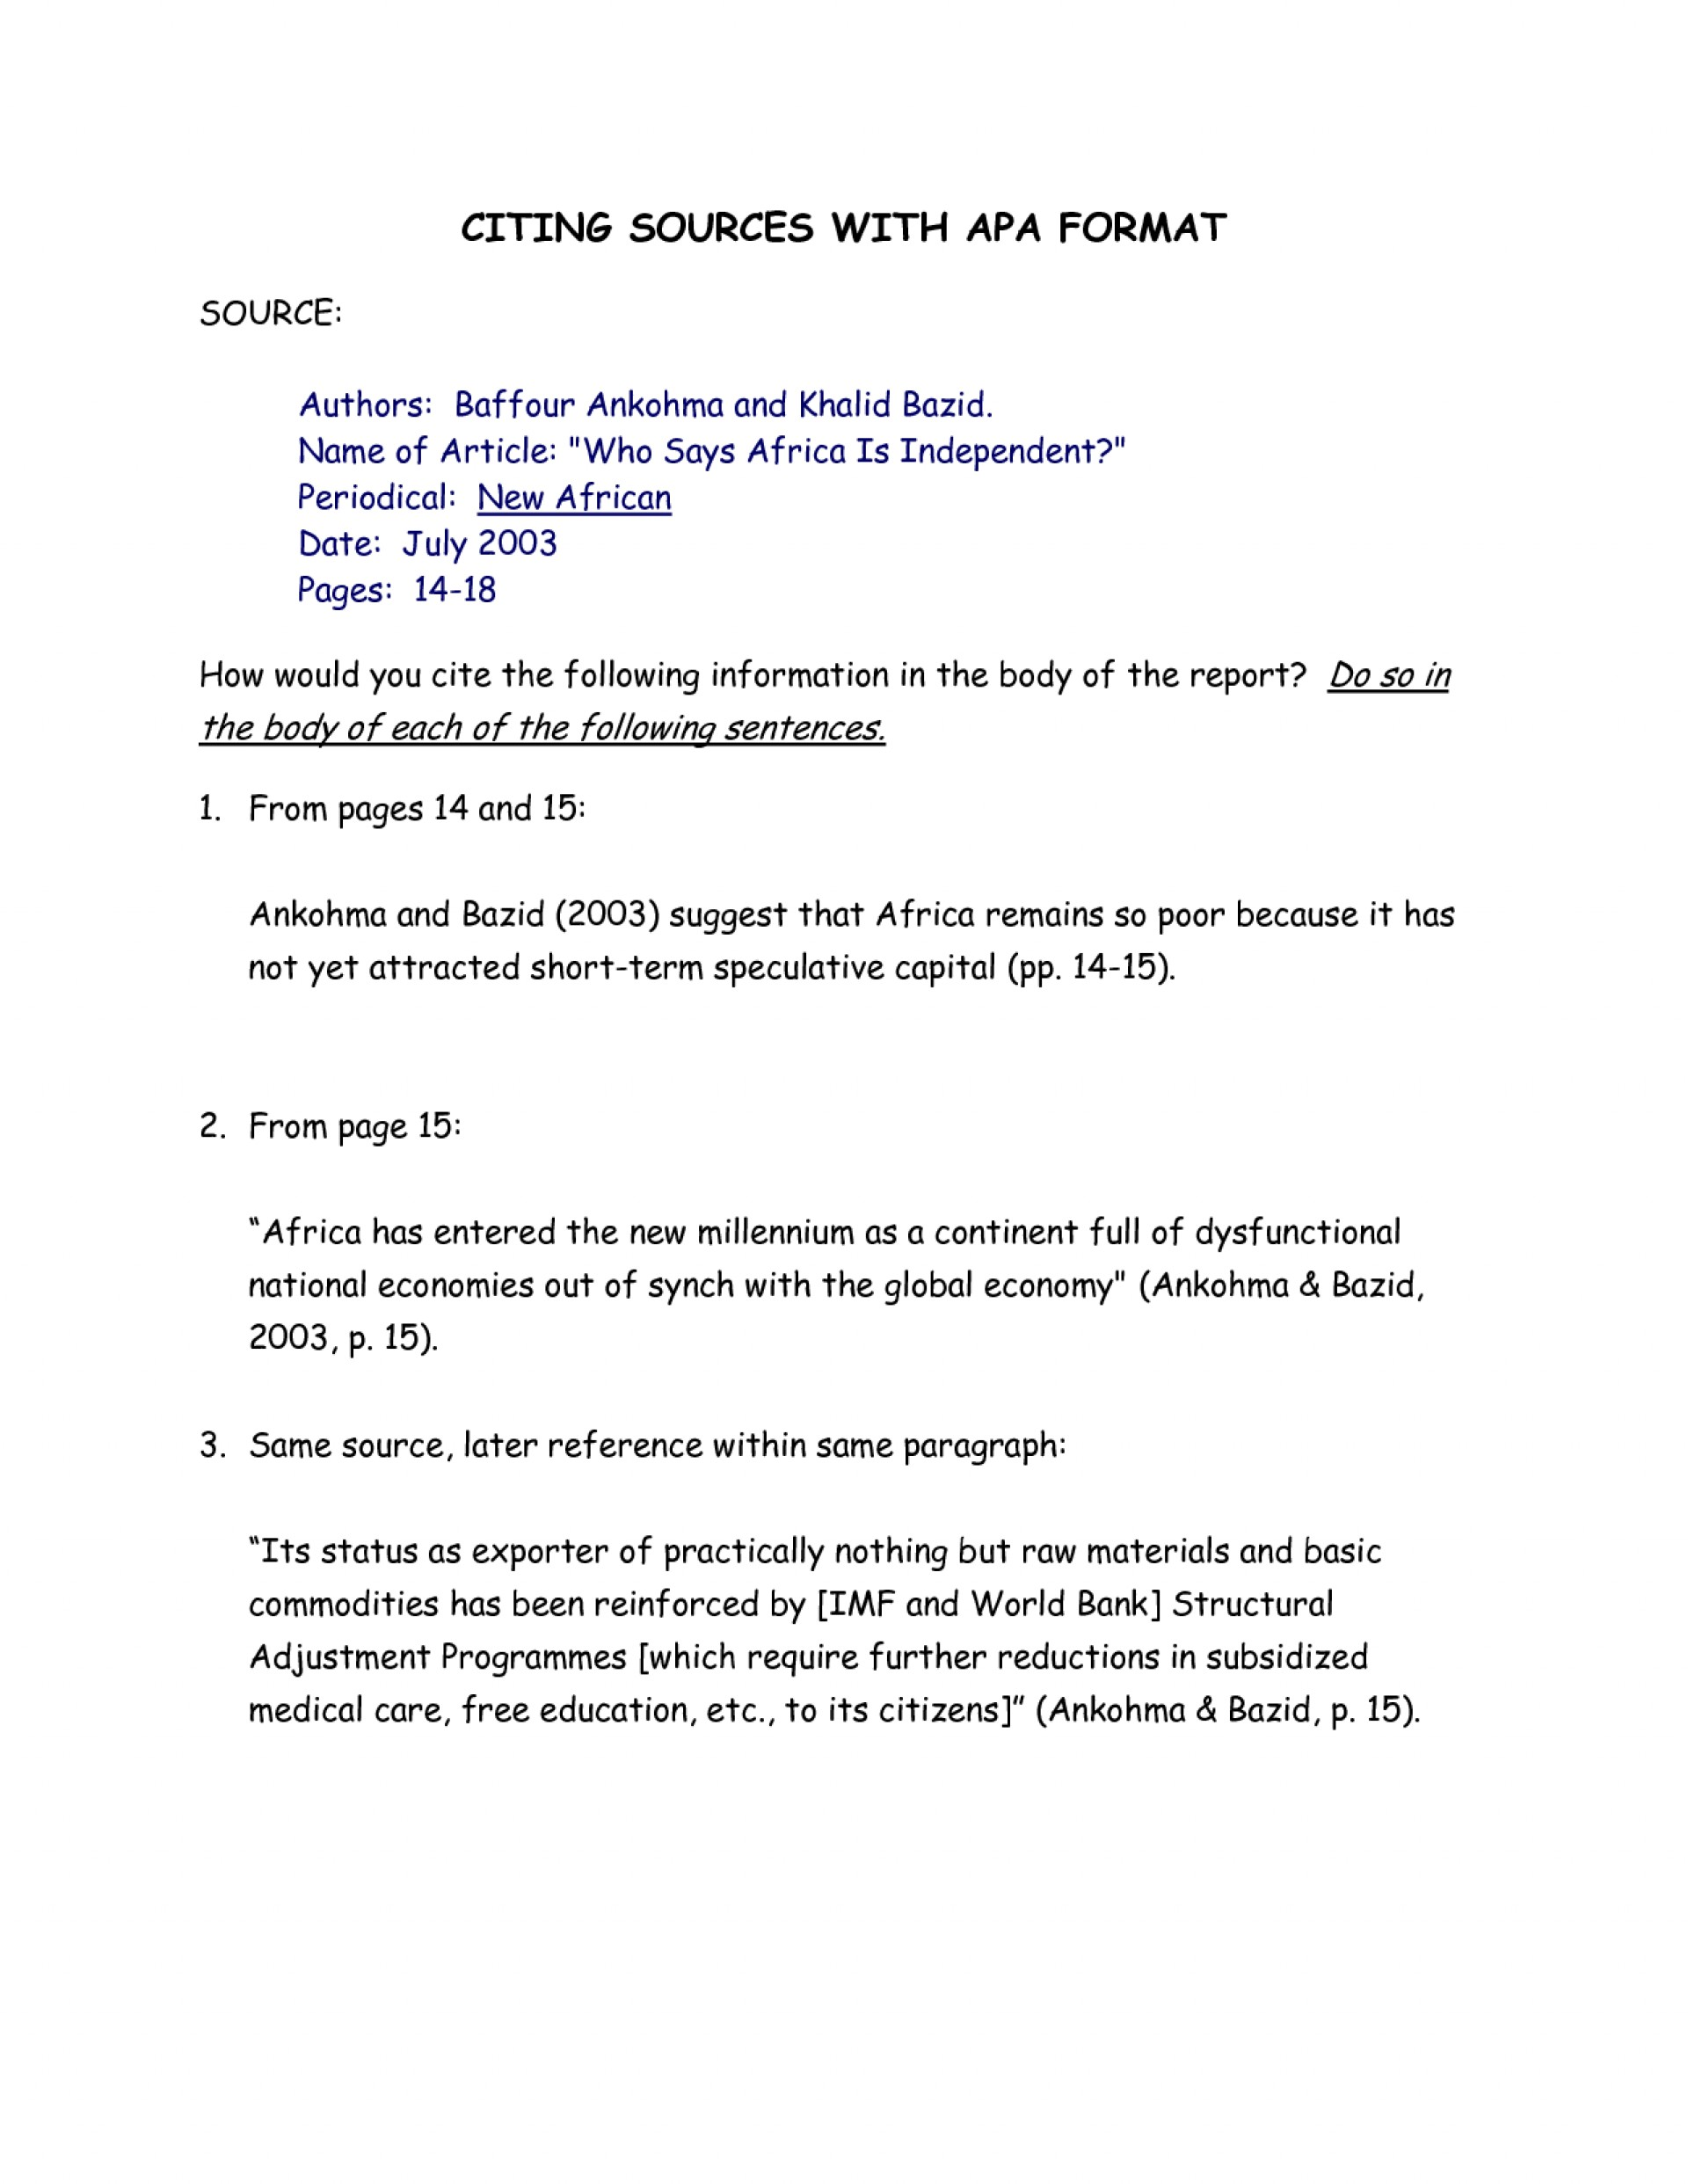 012 Citing Sources Apa Format Example 309734 Essay In Phenomenal An Argumentative Expository College 1920